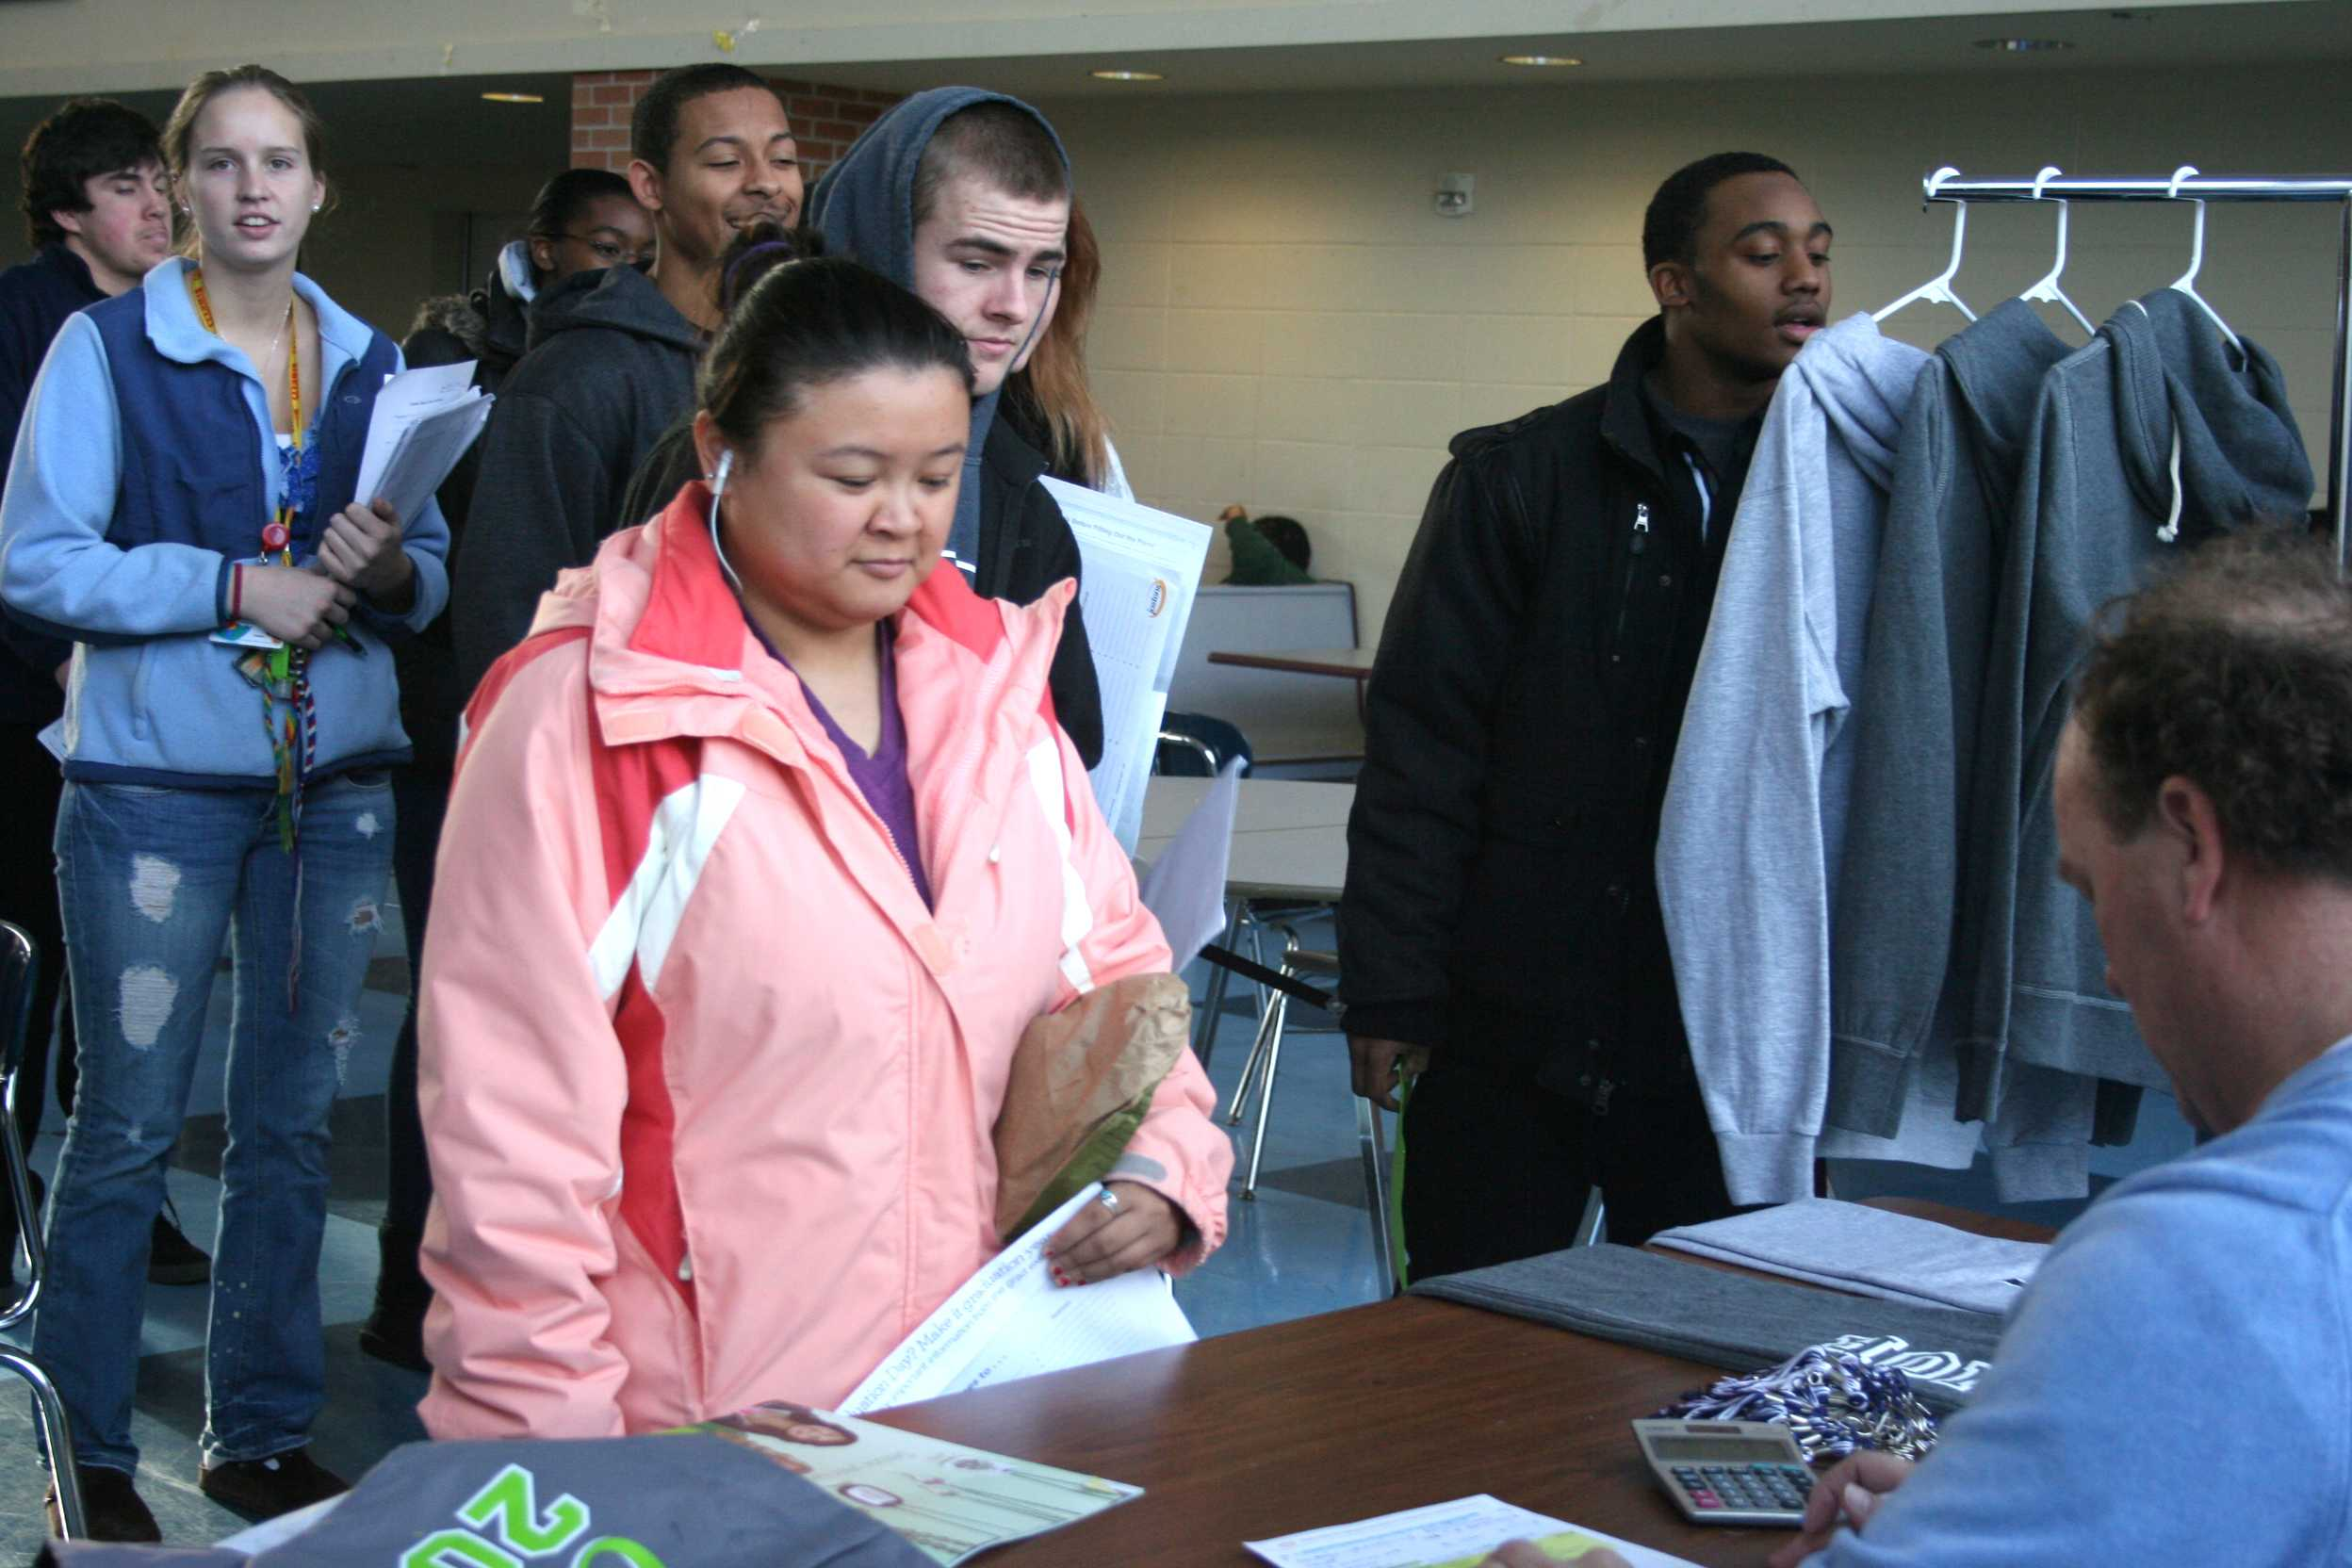 Seniors wait in line to make sure they get one of the most important things needed. The cap and gown that makes graduation official.